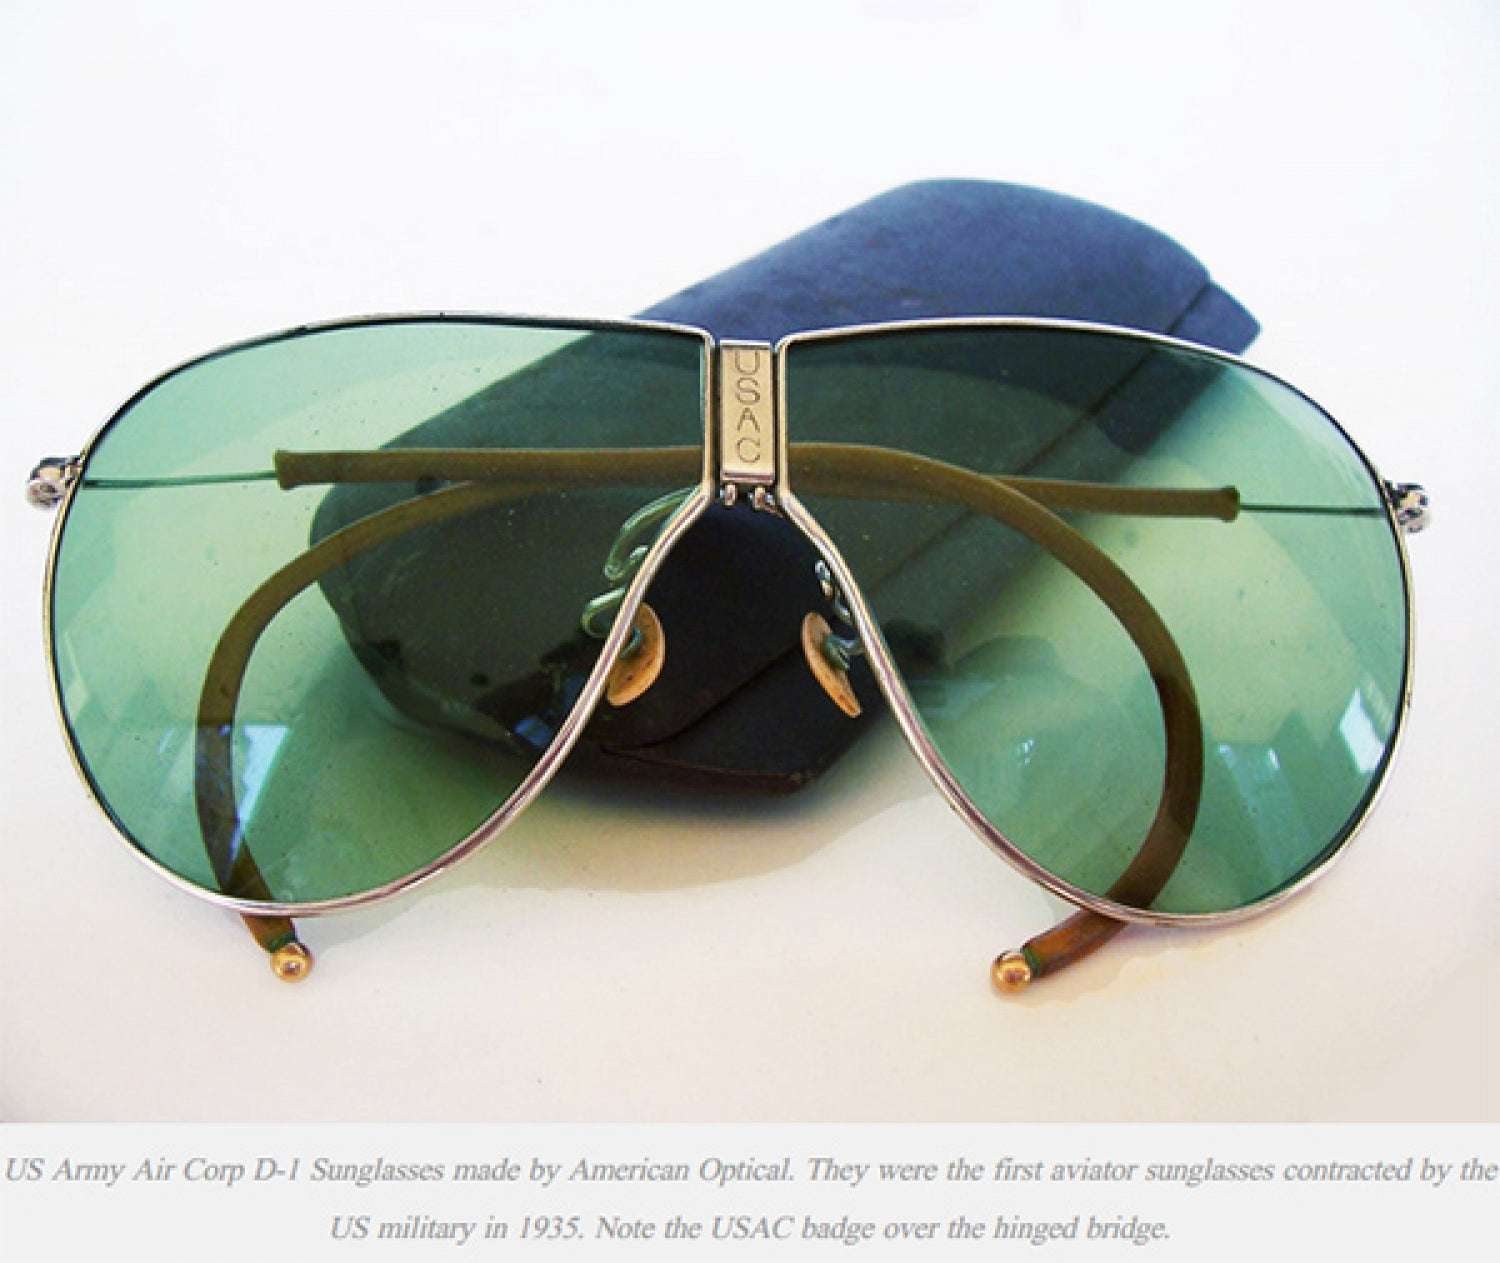 This post is for educational purposes, and no copyright infringement is intended. Image found on Bustelosoptical.com.